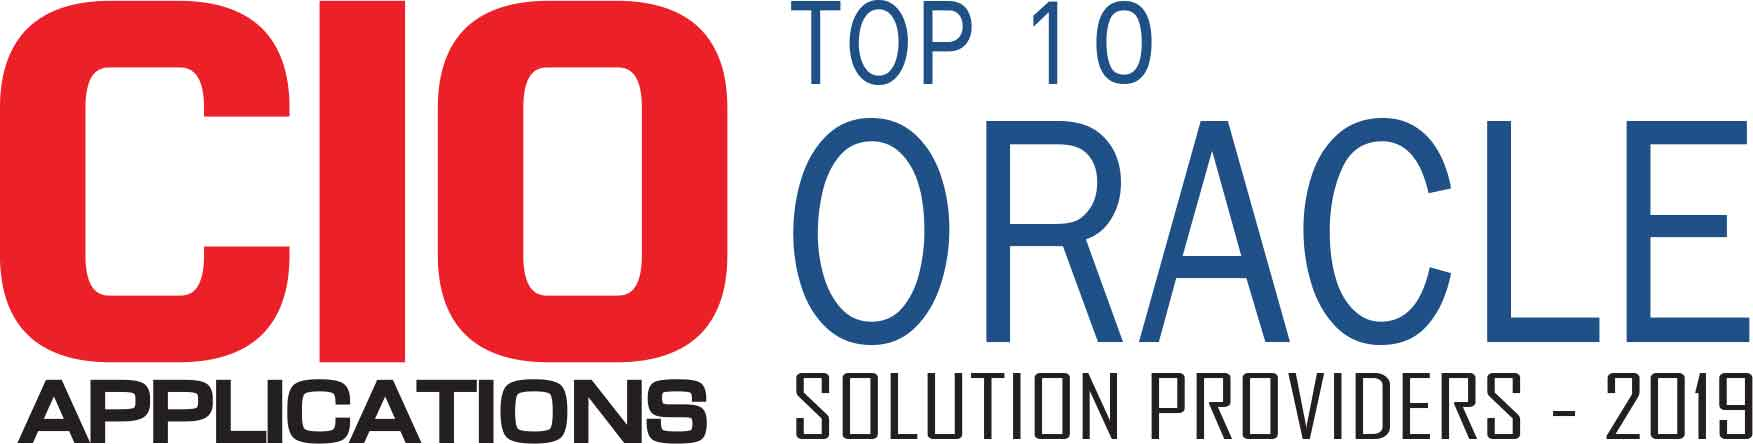 Top 10 Oracle Solution Companies - 2019